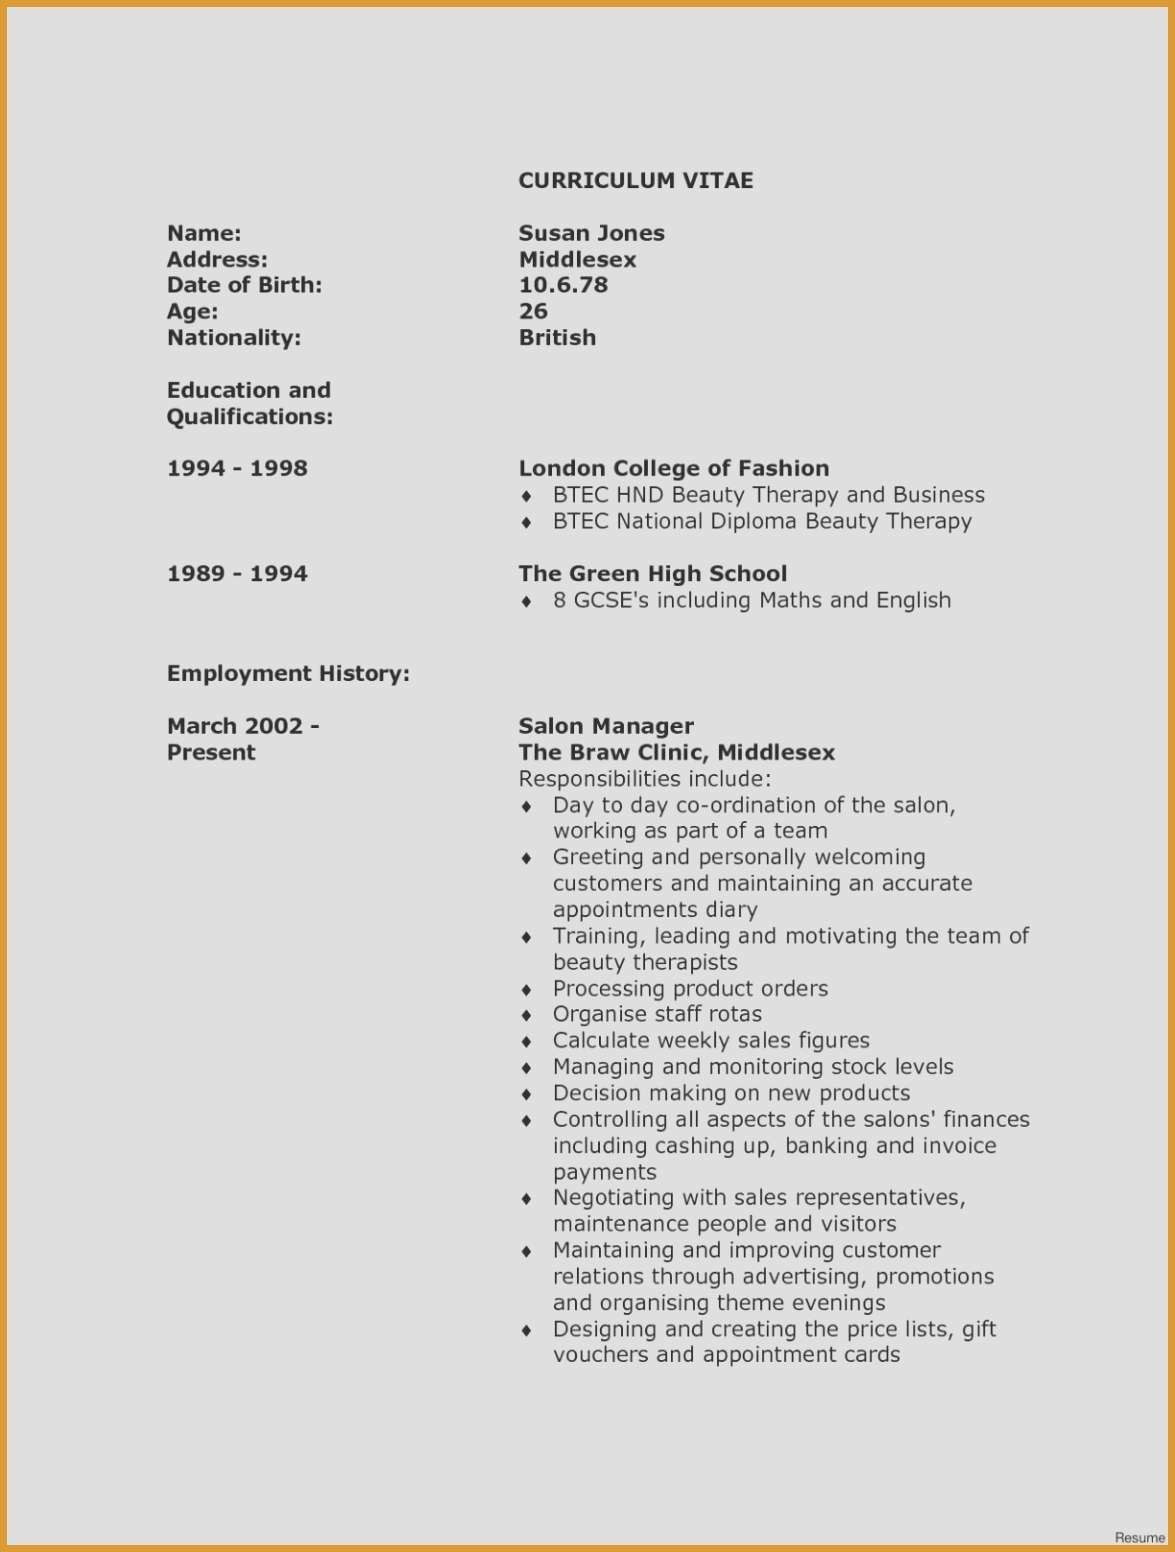 Dental assistant Resume - Resume for Dental assistant Luxury 30 Collection Dental assistant